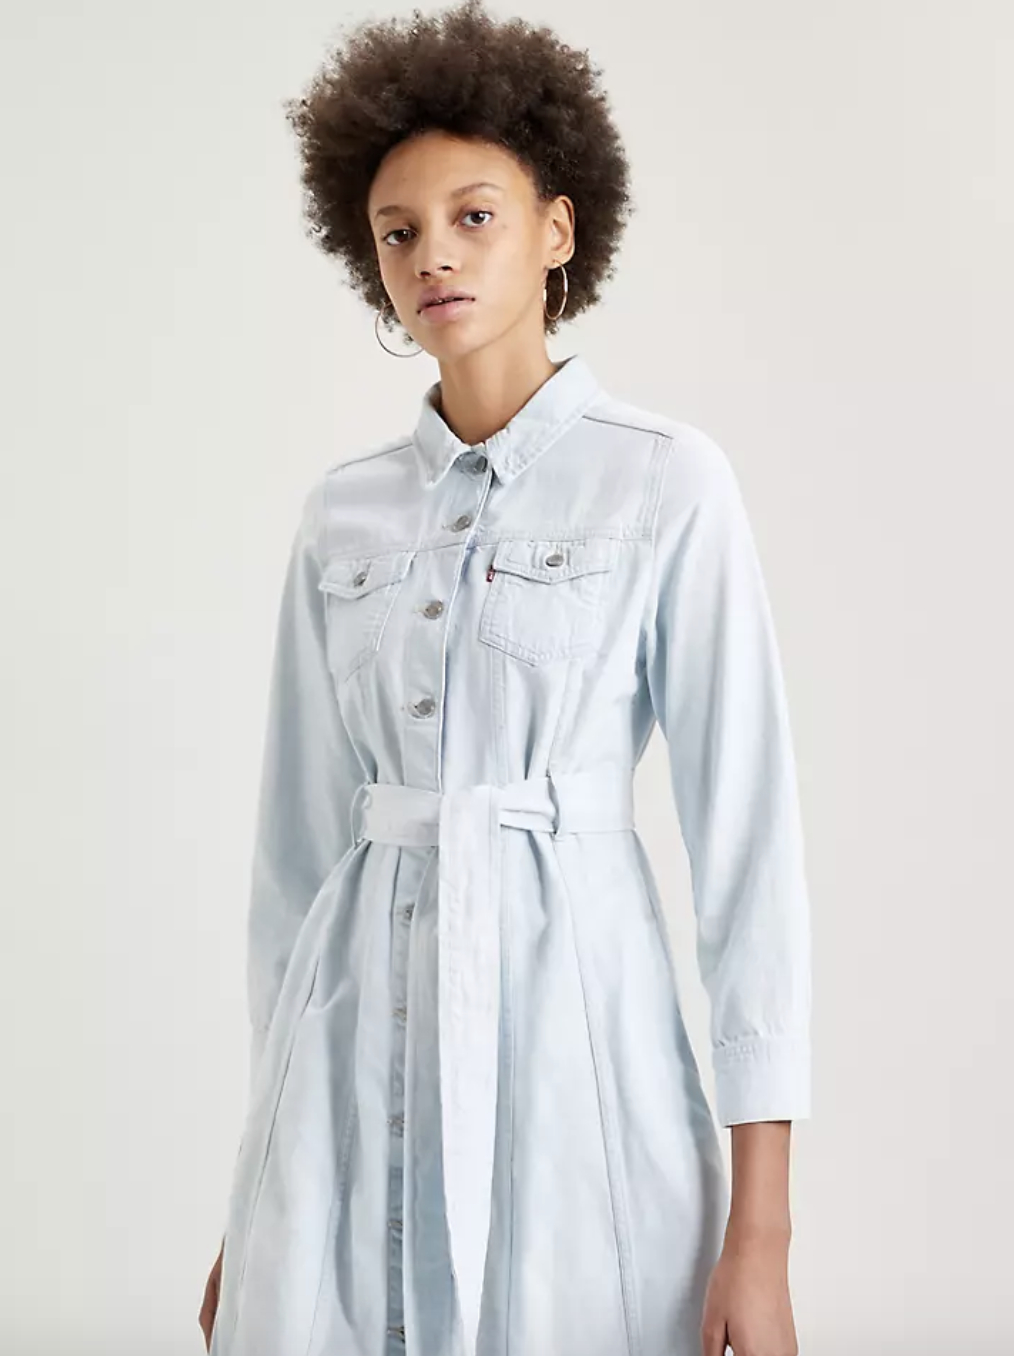 Model in pale light wash denim button up collared dress with tie string belt at waist and slight puff sleeves